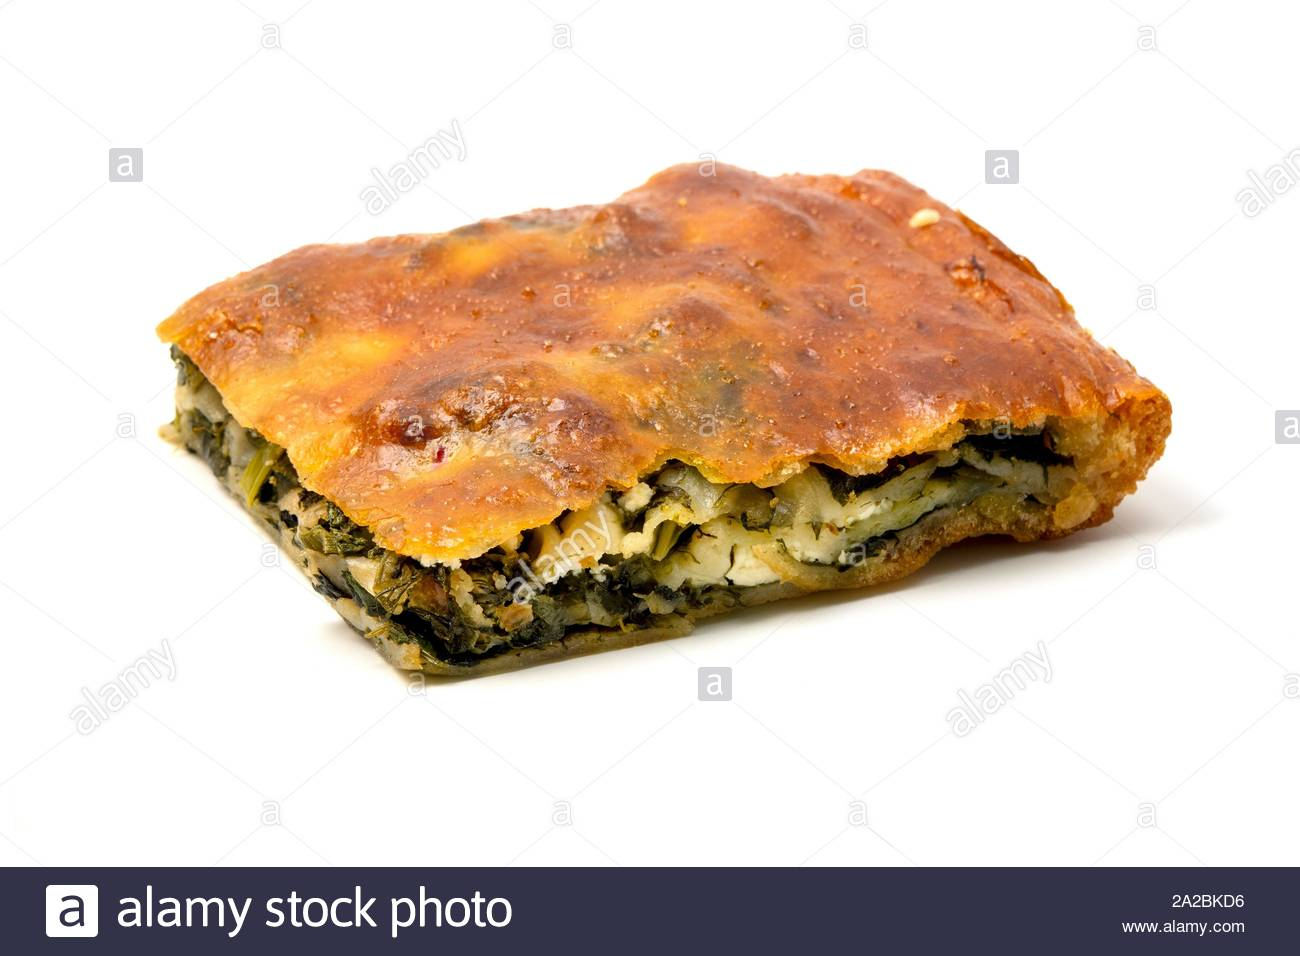 Typical Borek with a spinach and cheese filling on a white background. Stock Photo